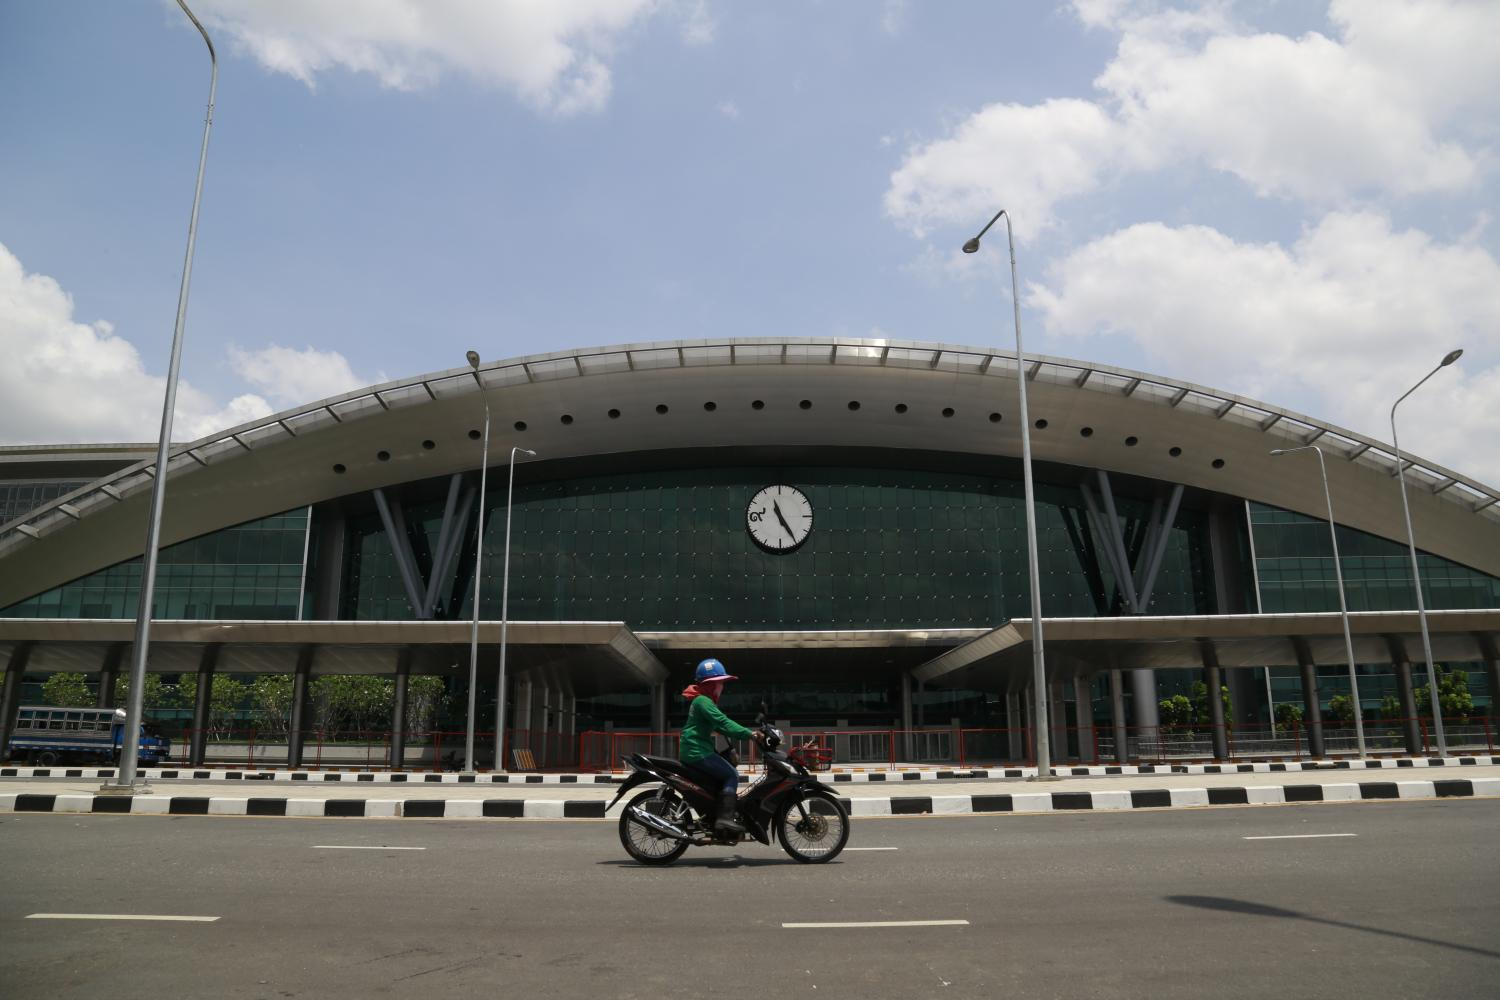 A motorcyclist drives past Bang Sue Grand Station in Bangkok, which opened in August this year.(Photo: Arnun Chonmahatrakool)